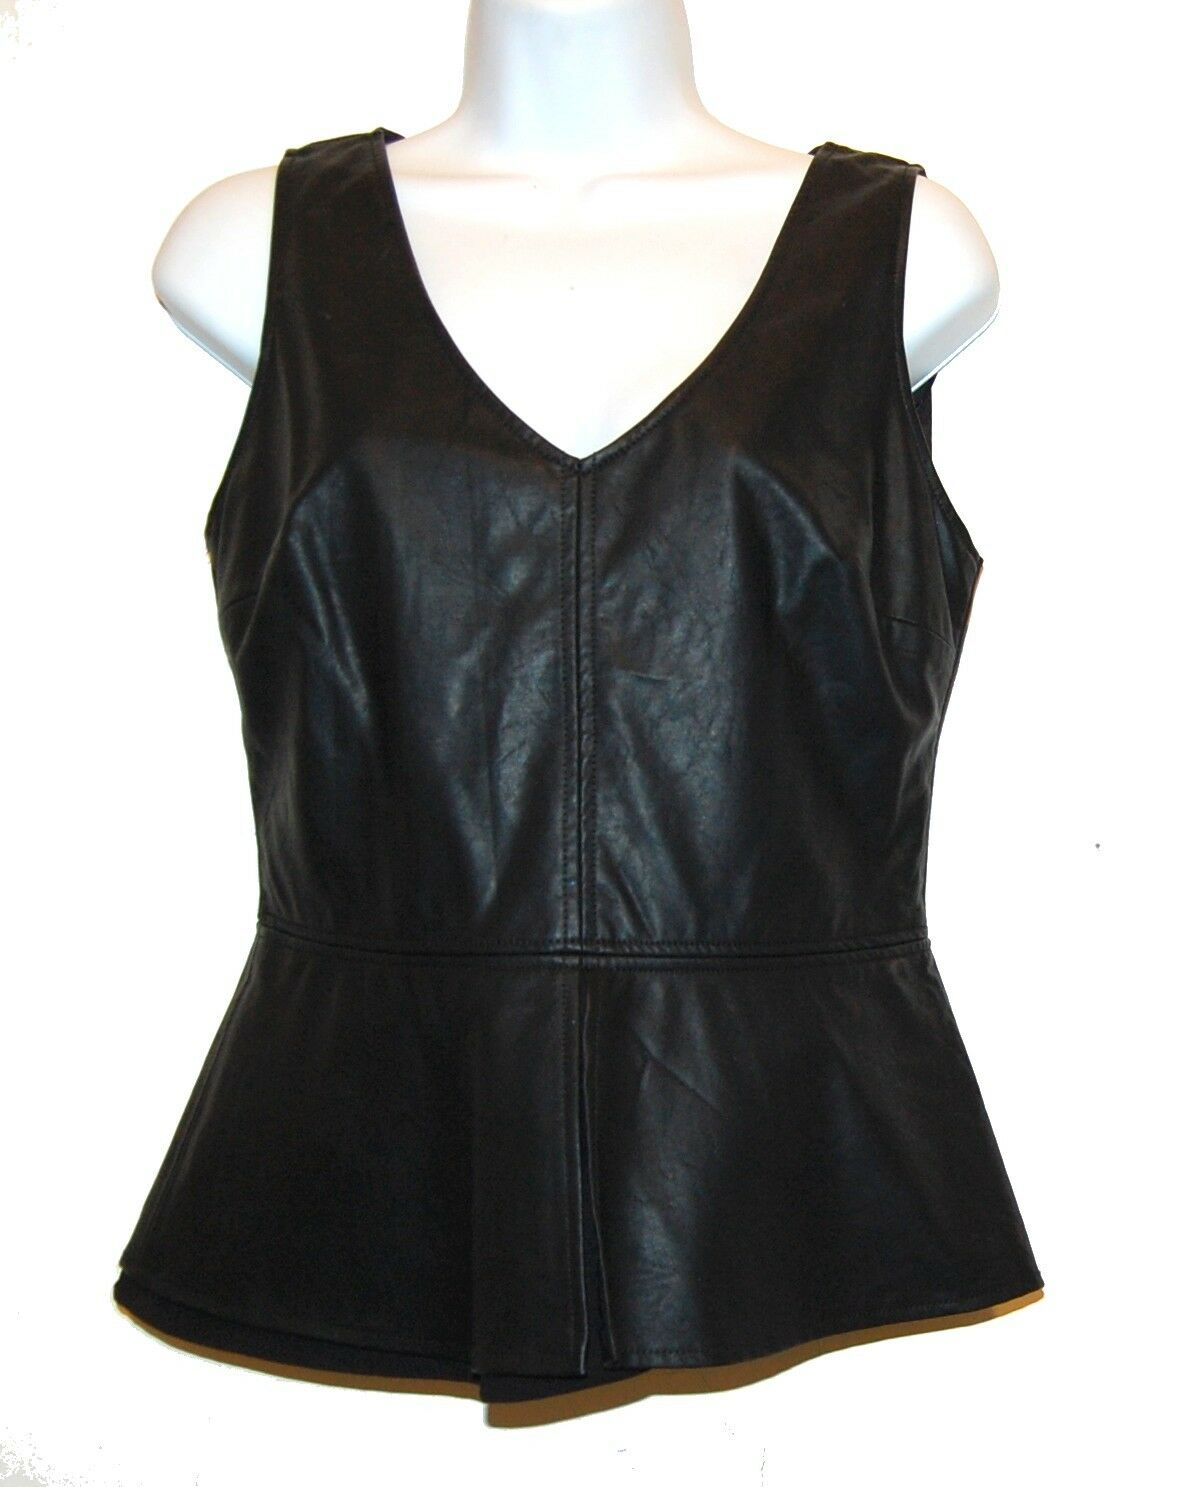 Zara Trafaluc schwarz Woman Glamour Faux Leather Peplum Shirt Größe L NEW